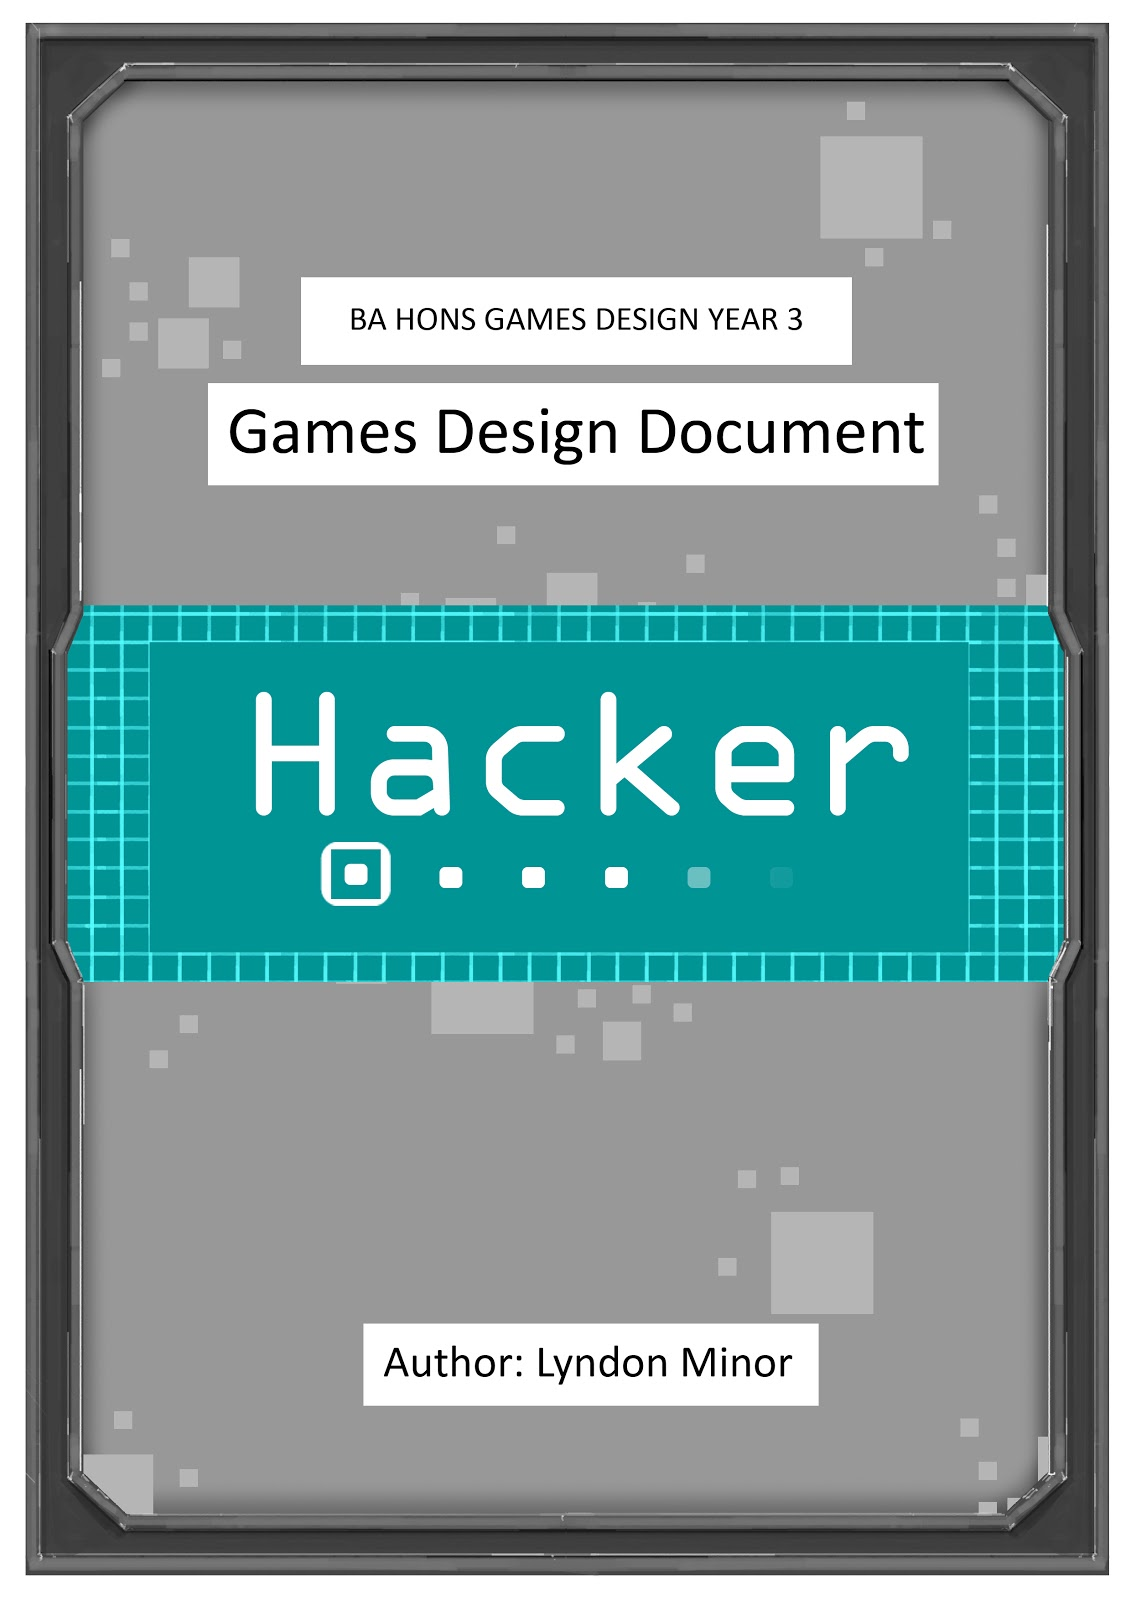 xb games futures game design document final draft lyndon example of finished game design document front page